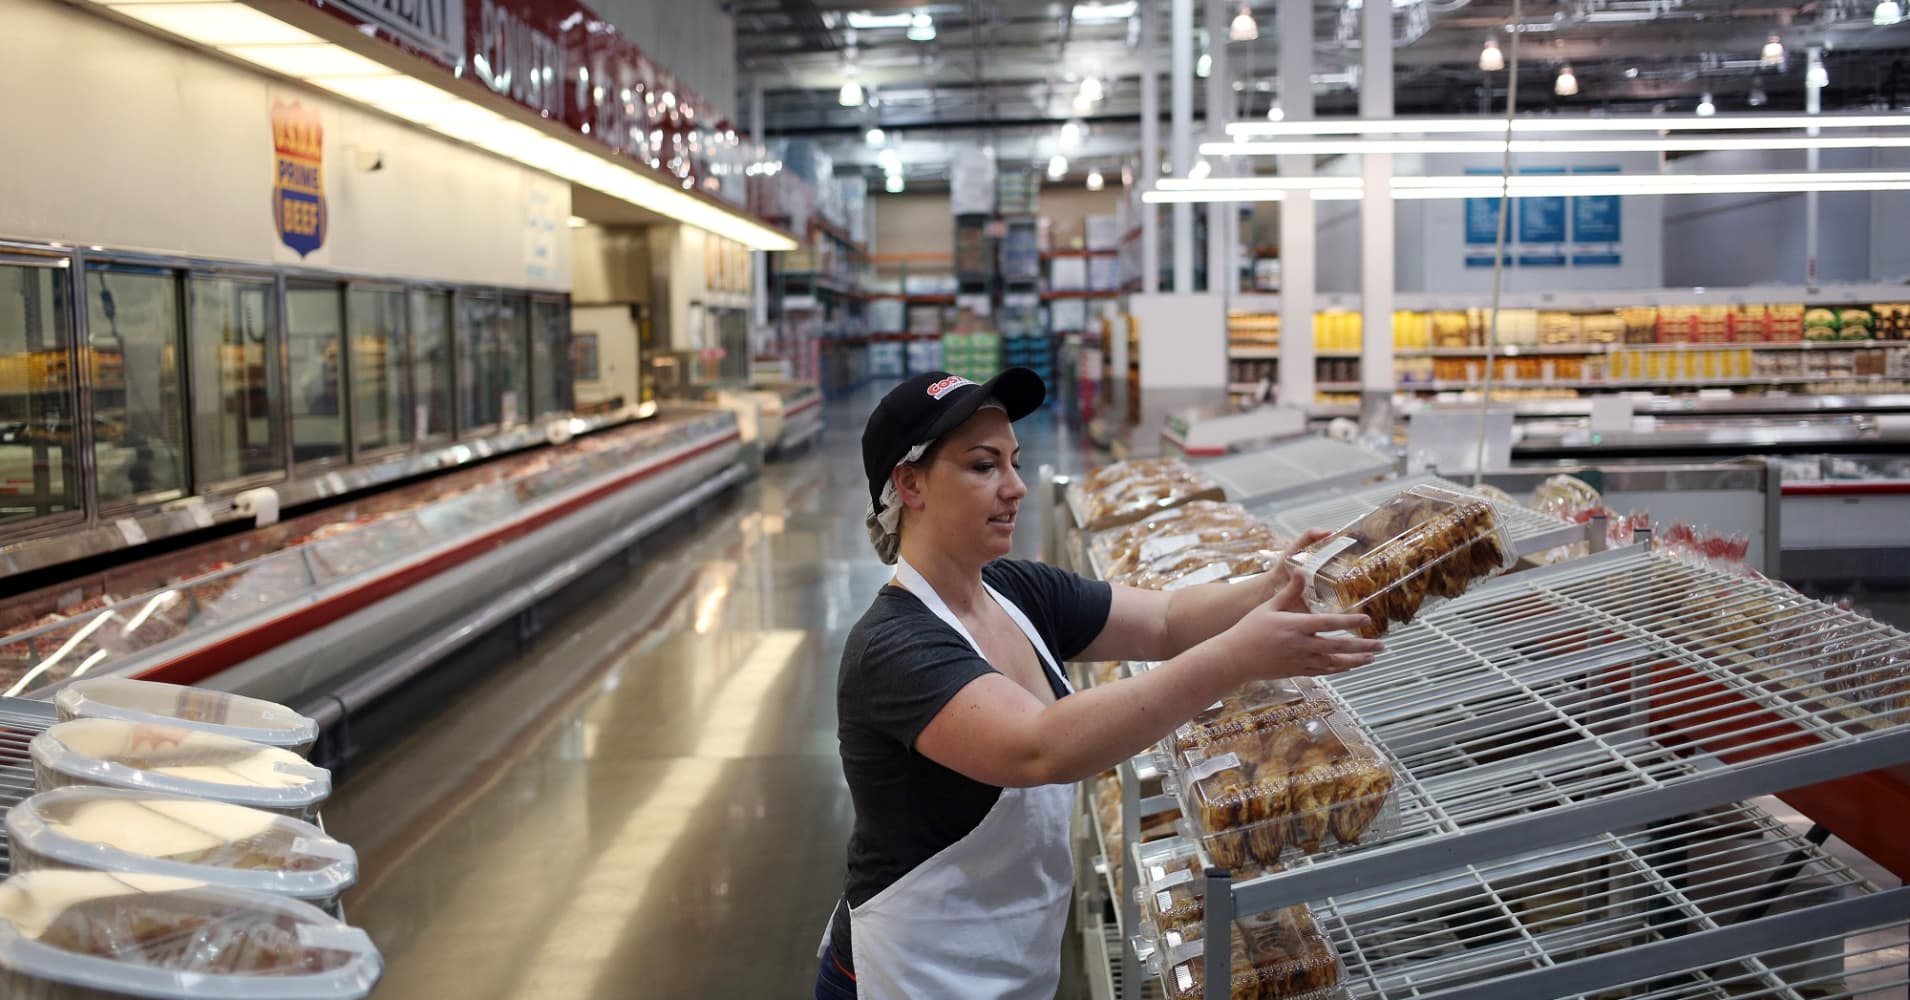 A bakery employee distributes baked goods onto a display rack inside a Costco Wholesale Corp. store in Nashville, Tennessee, U.S.